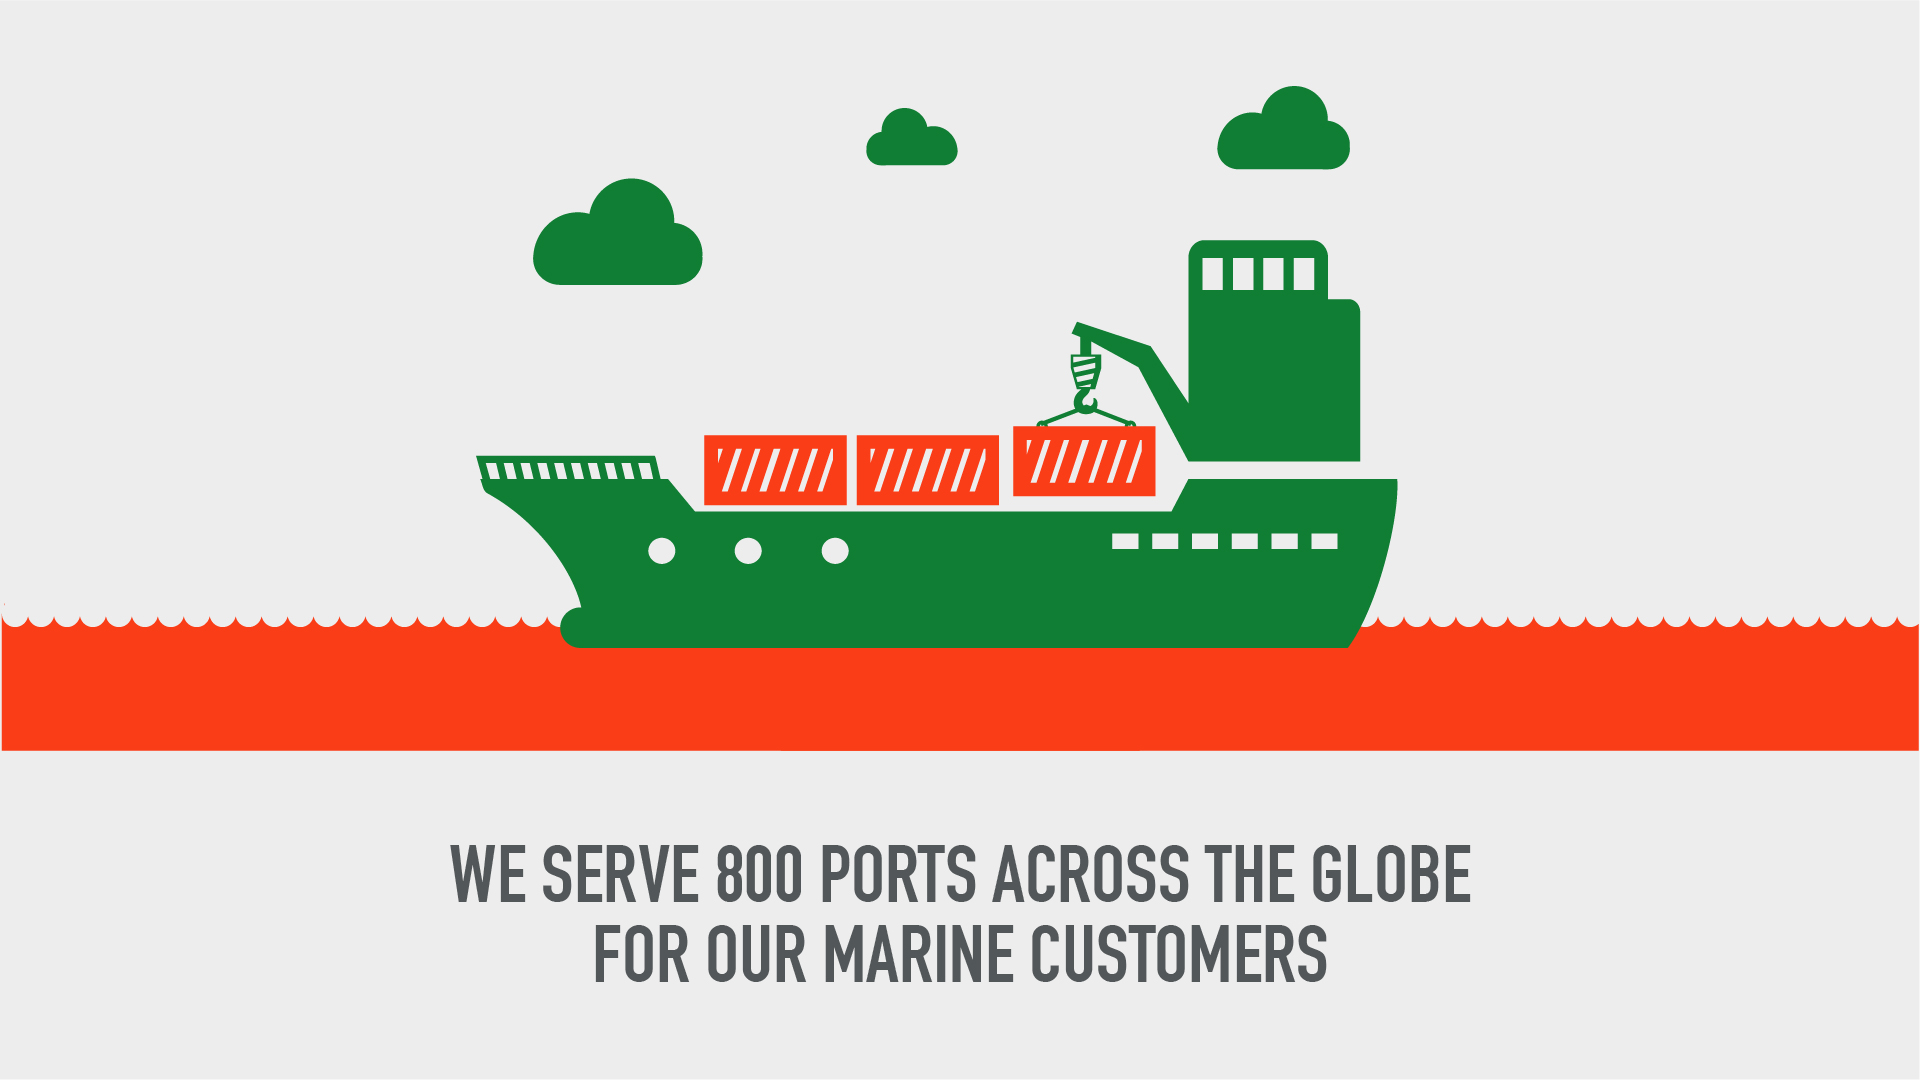 We serve 800 ports across the globe for our marine customers.jpg